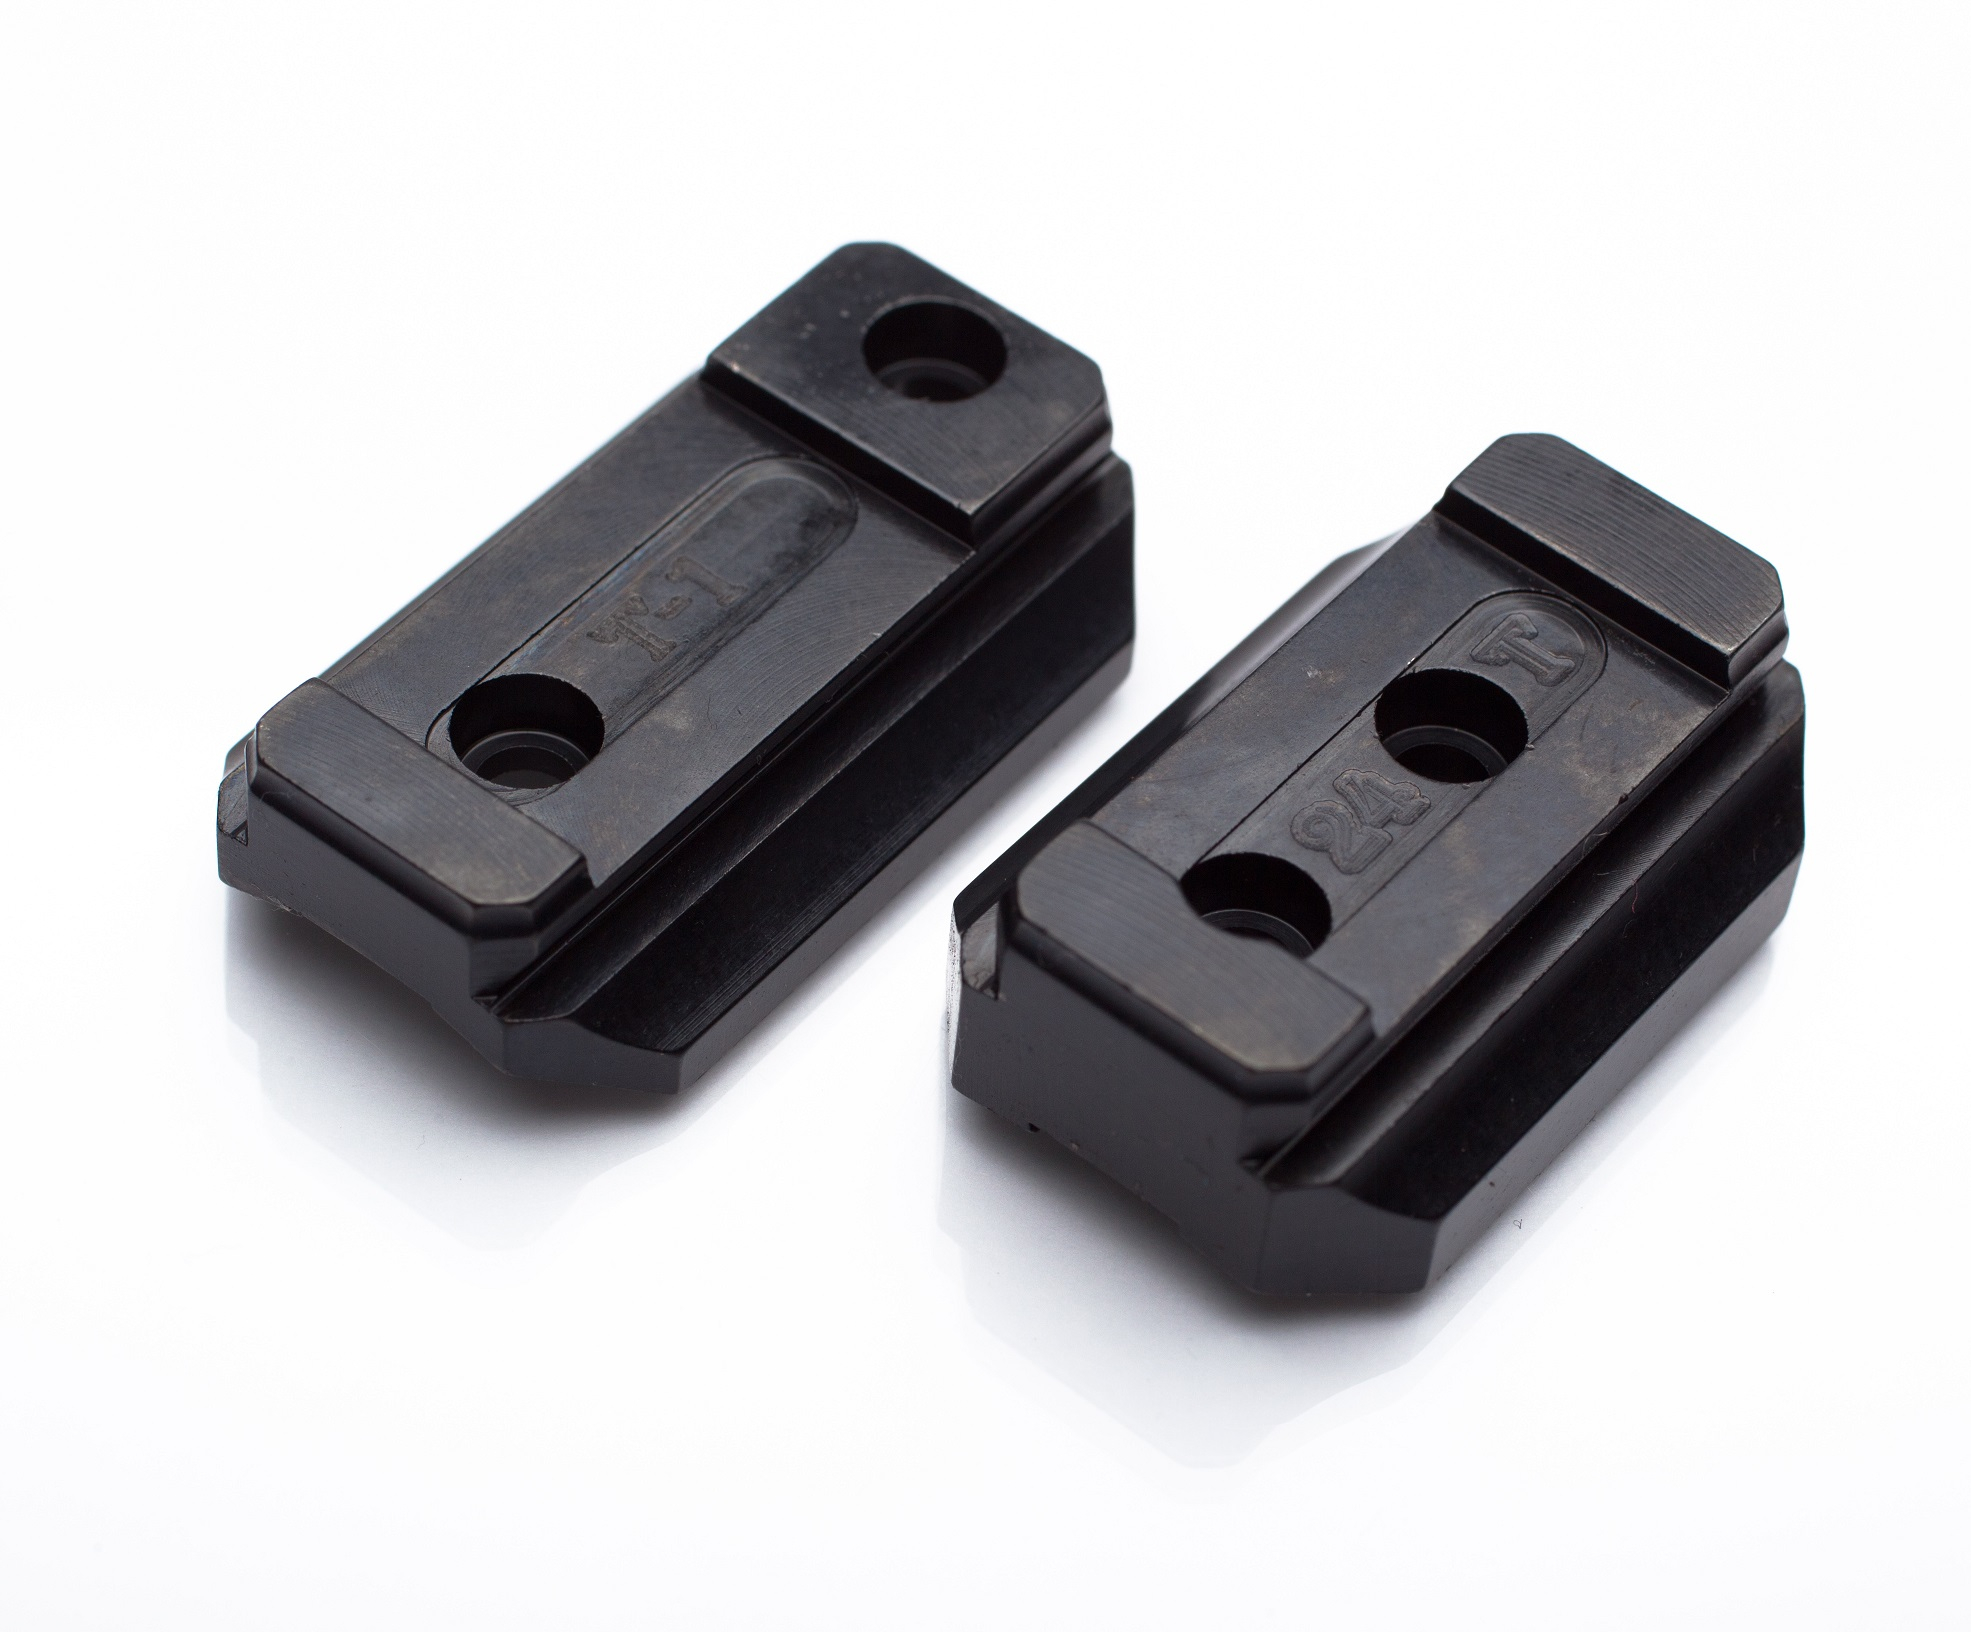 The Talley quick detachable rings clamp to the Talley bases which incorporate both dovetail and recoil lugs. (Picture courtesy talleymanufacturing.com).